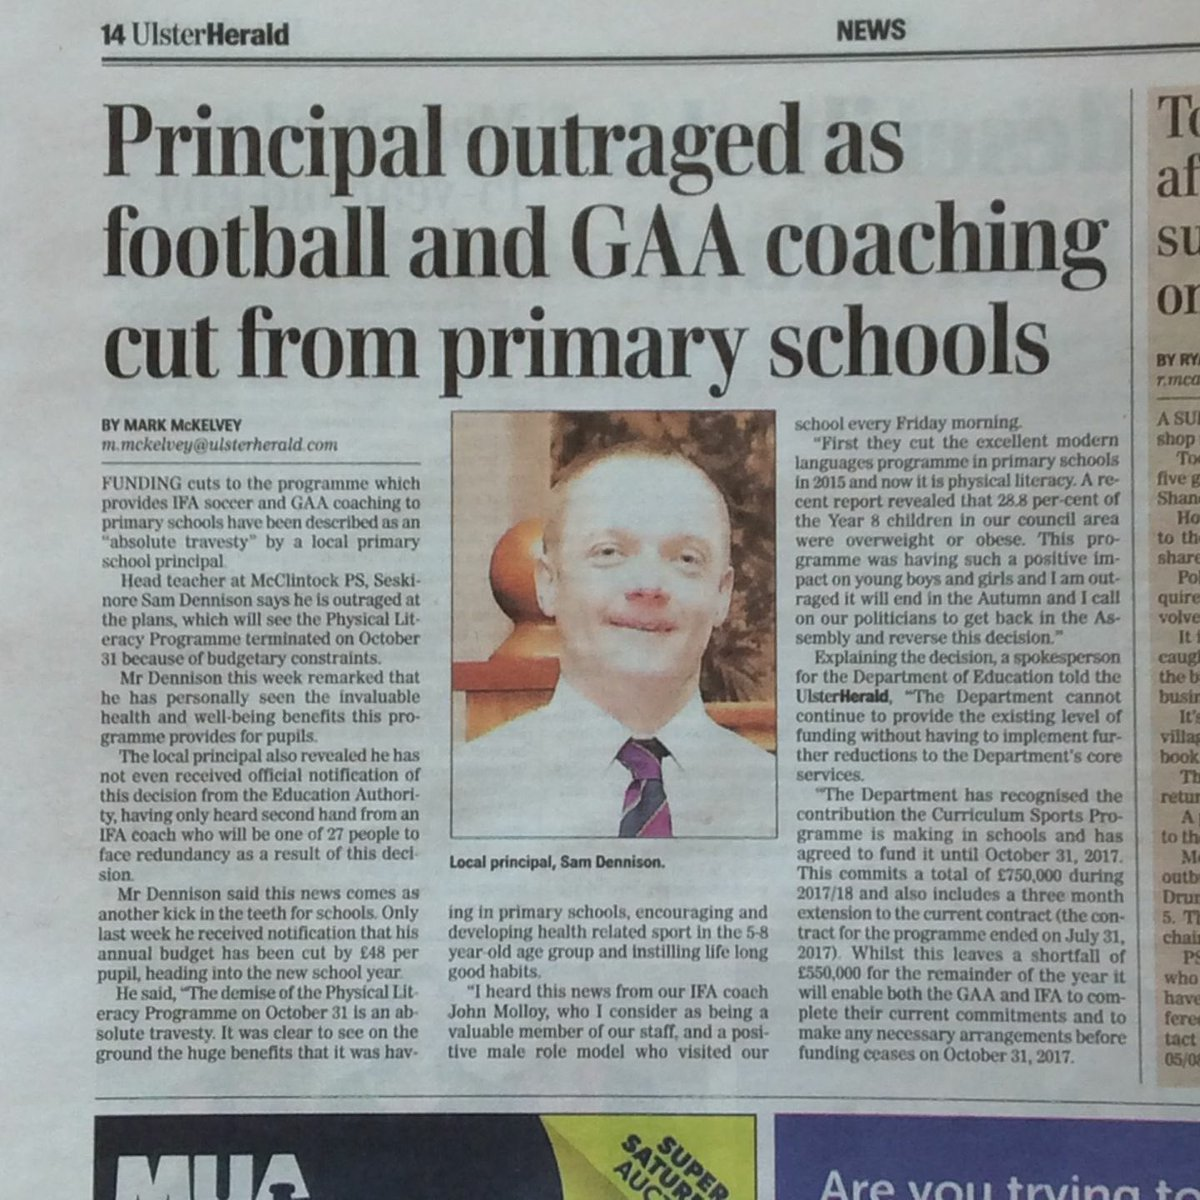 RT! Plz don&#39;t let this program suffer! All @UlsterGAA @OfficialIrishFA #Clubs #Schools #Coaches #Teachers #Parents plz lobby your local #MLA<br>http://pic.twitter.com/oI4p1Uyvpg